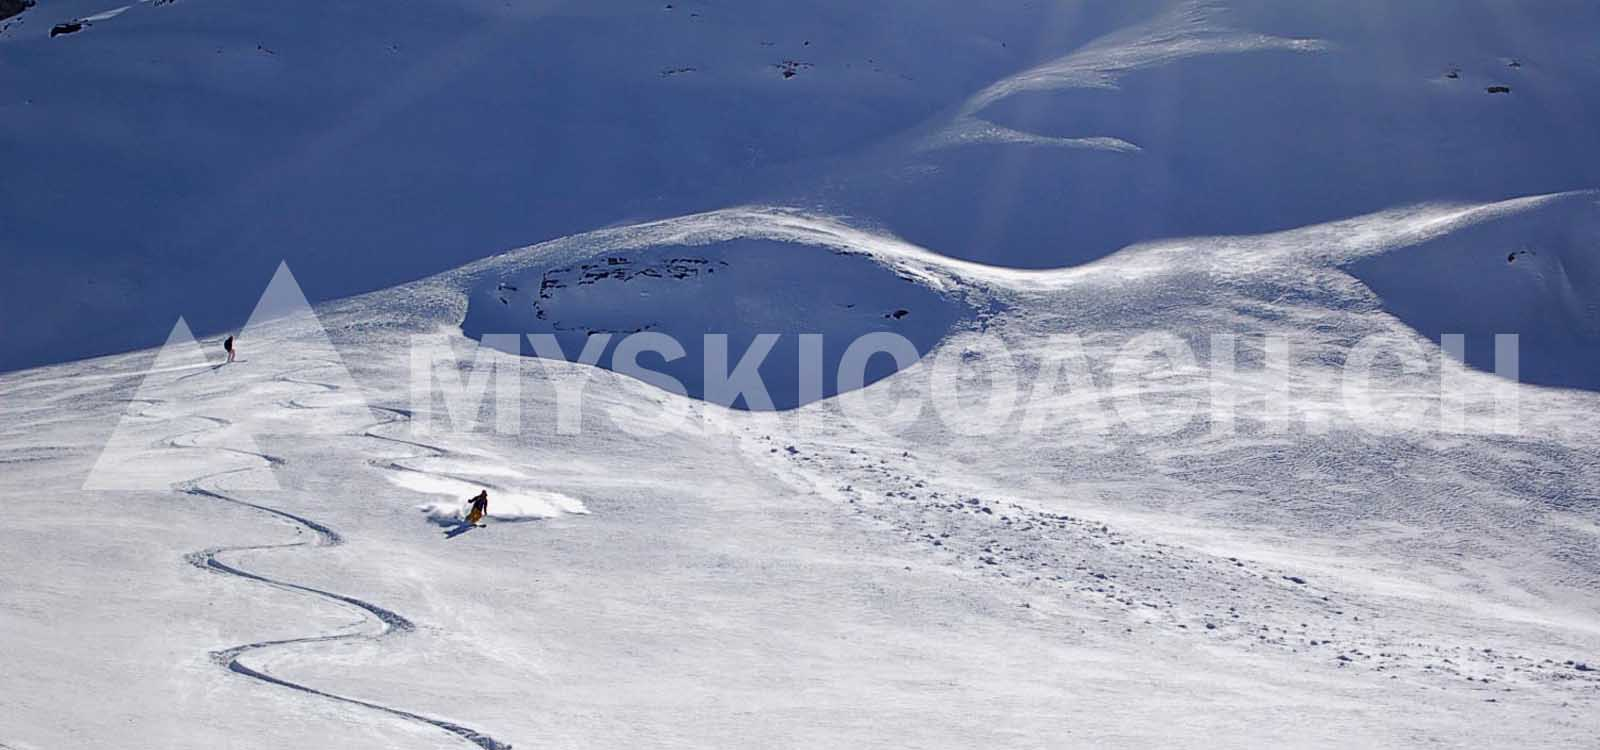 Cours avalanche Valais ¦ Les bases ¦ Snow Safety Myskicoach.ch